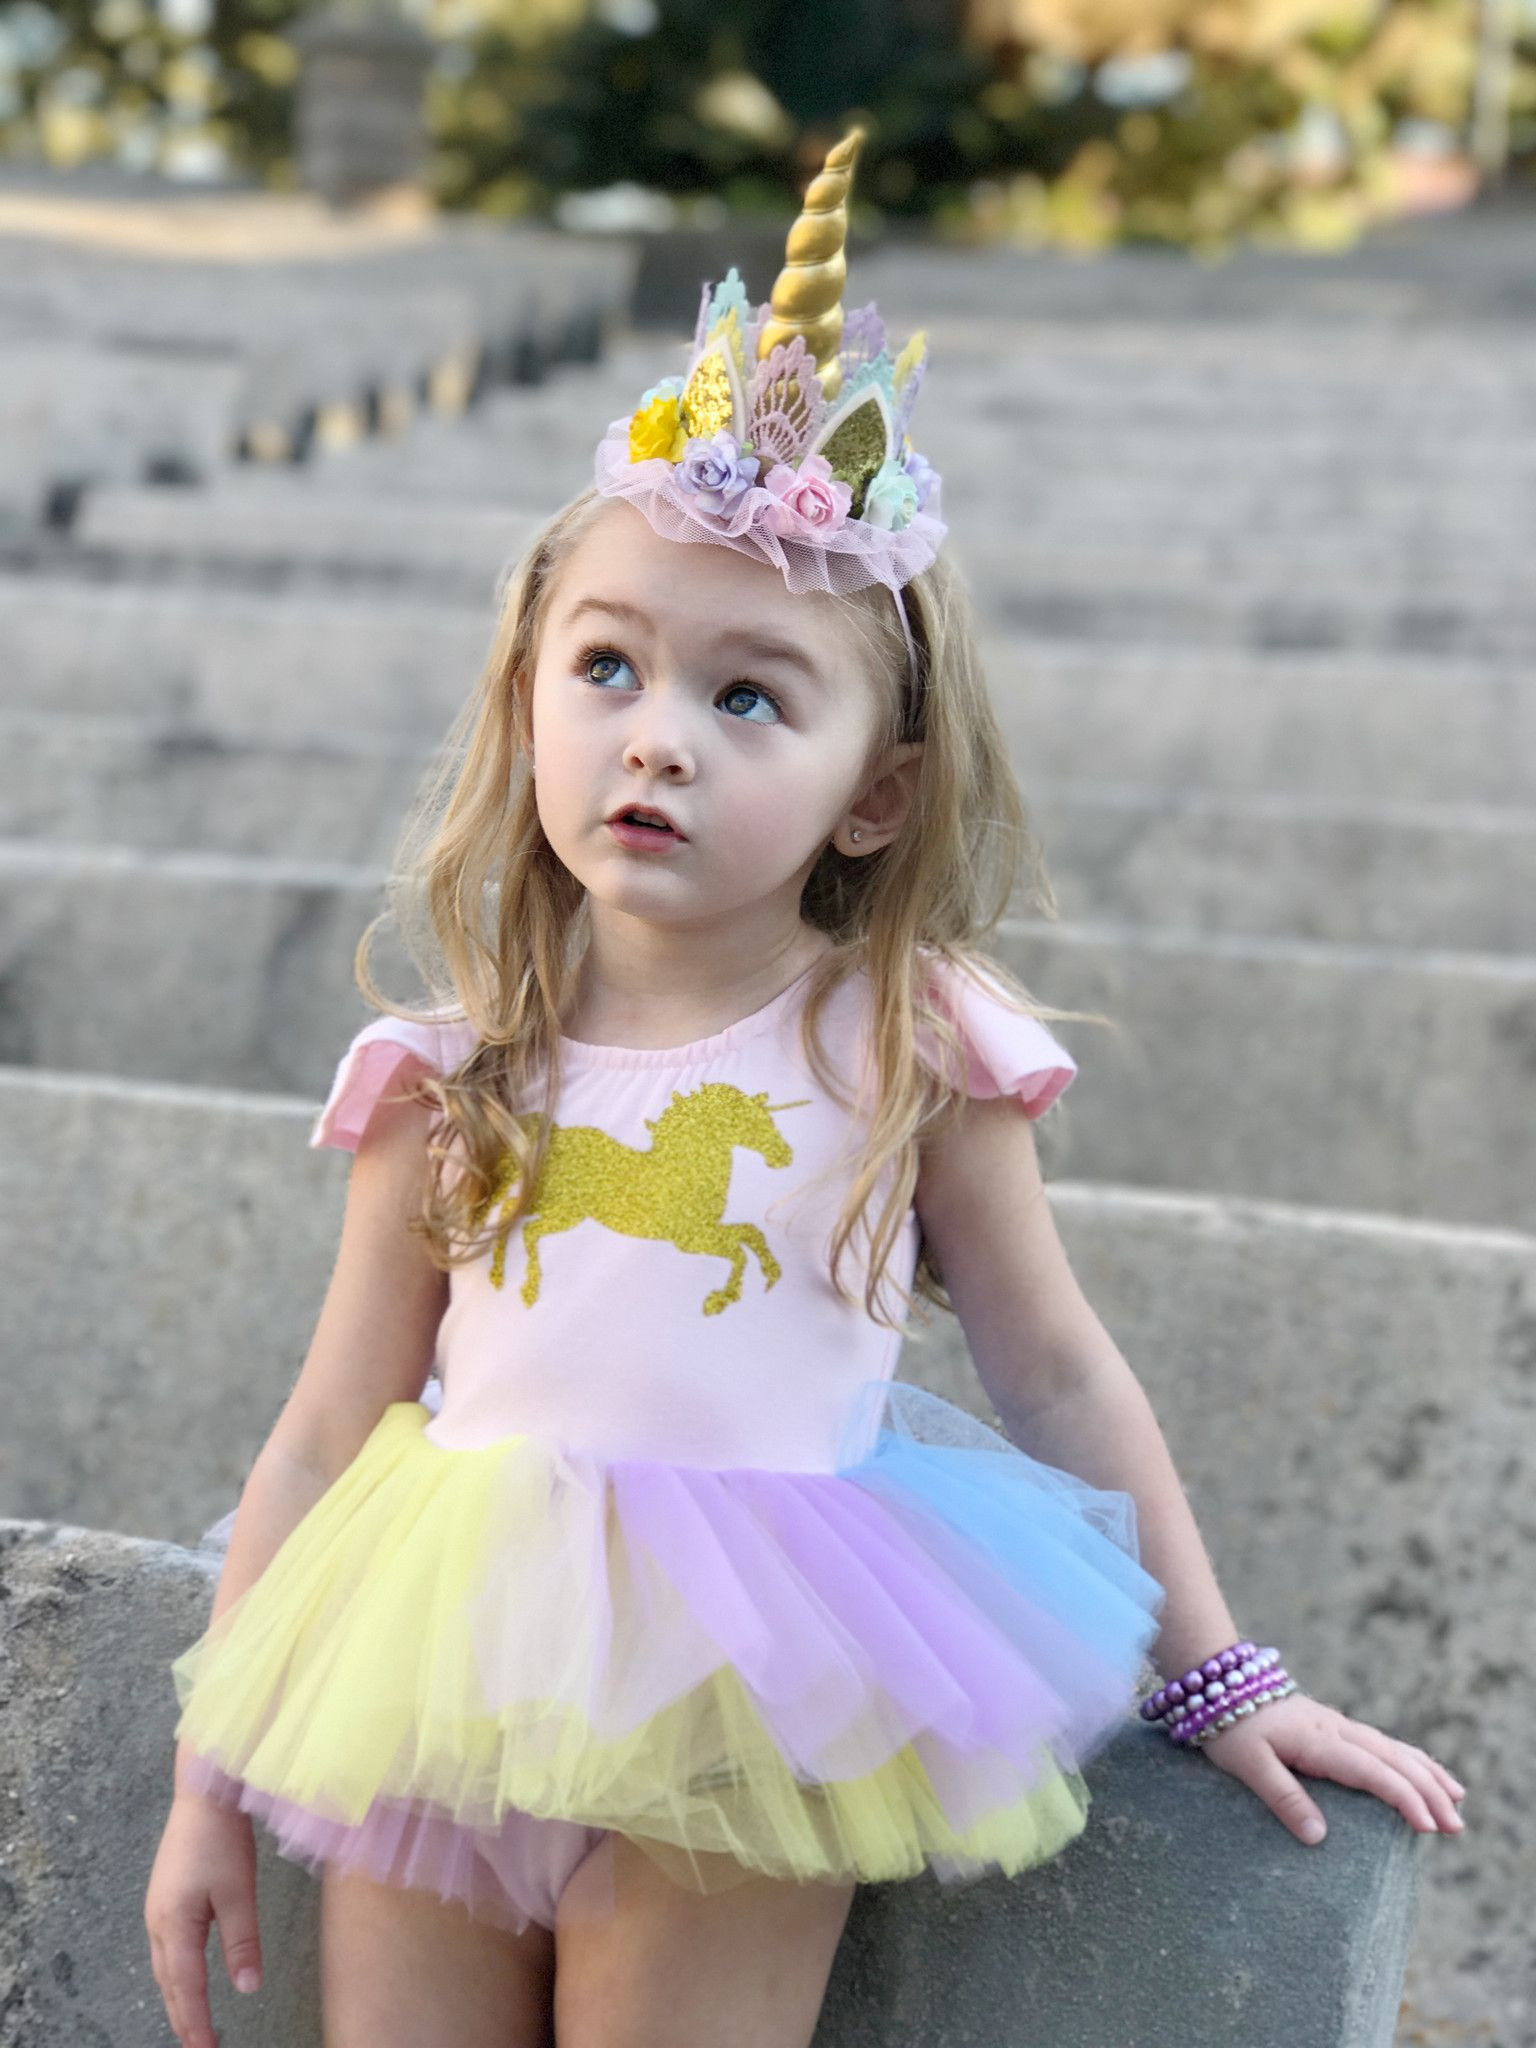 a695a85e033 Personalize it Pink Pastel Tutu Dress - Unicorn - Bunny - Name - Belle  Threads